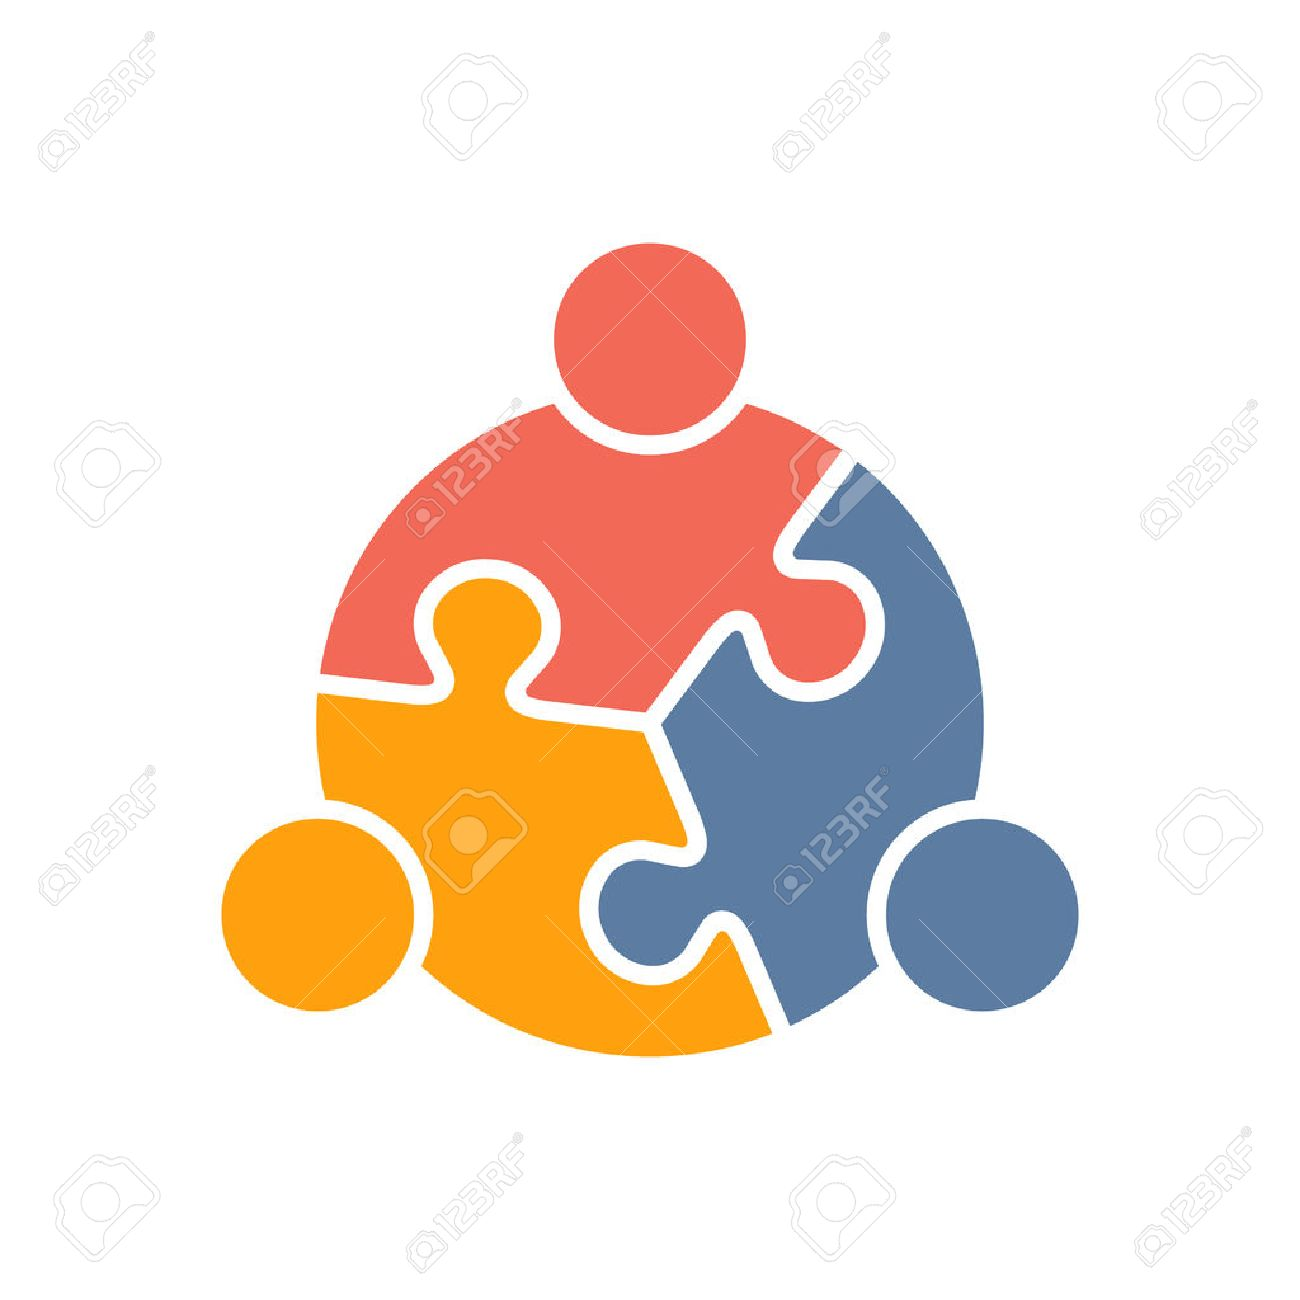 Teamwork People puzzle three pieces  Vector graphic design illustration